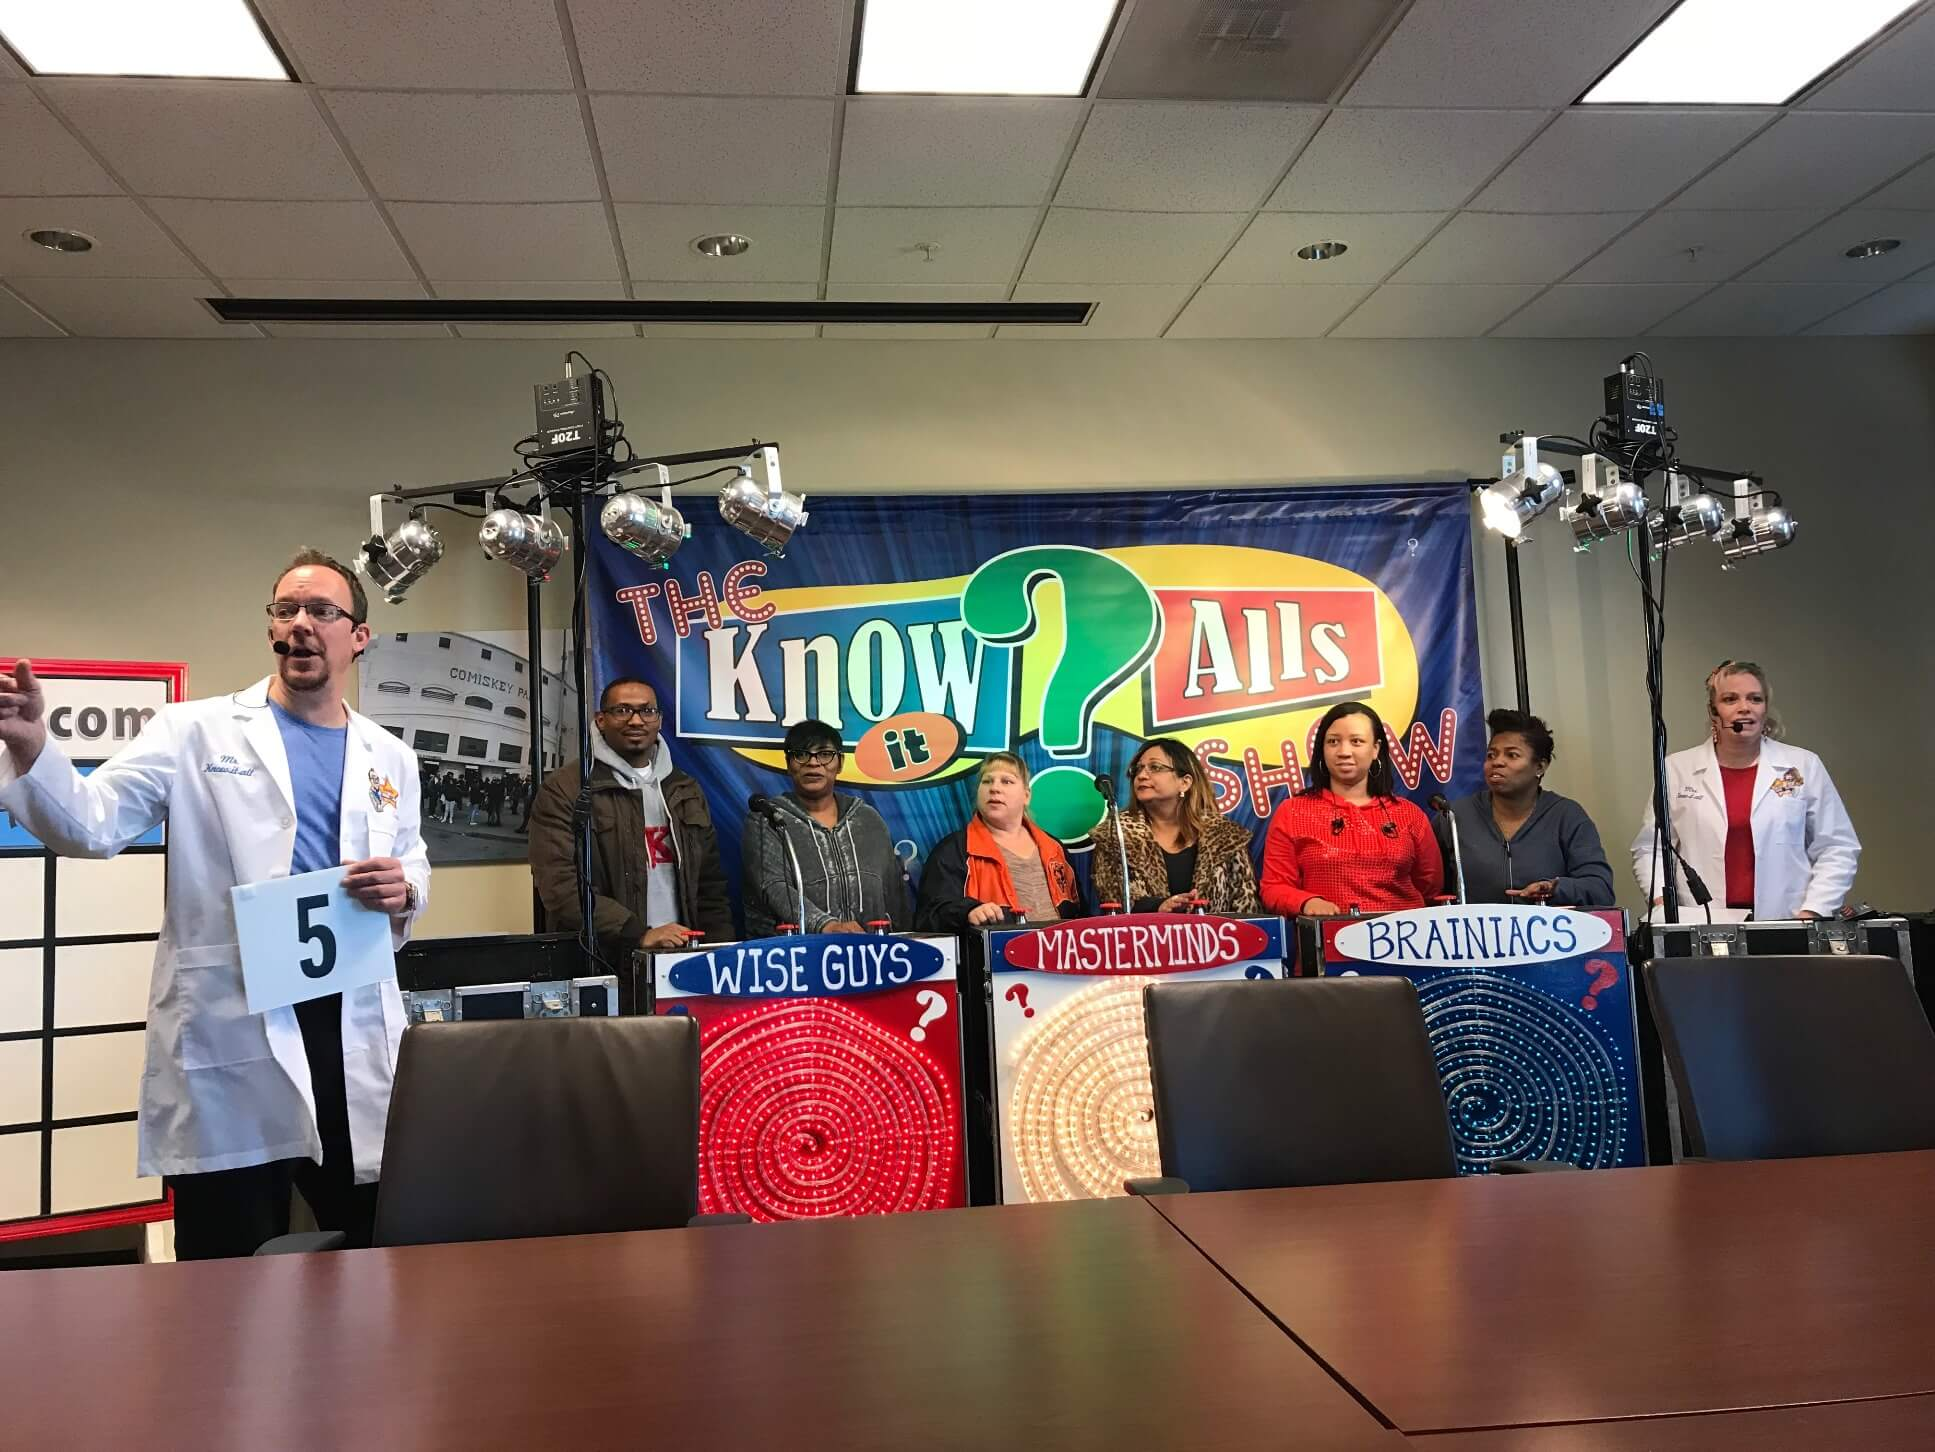 The know it alls show in action